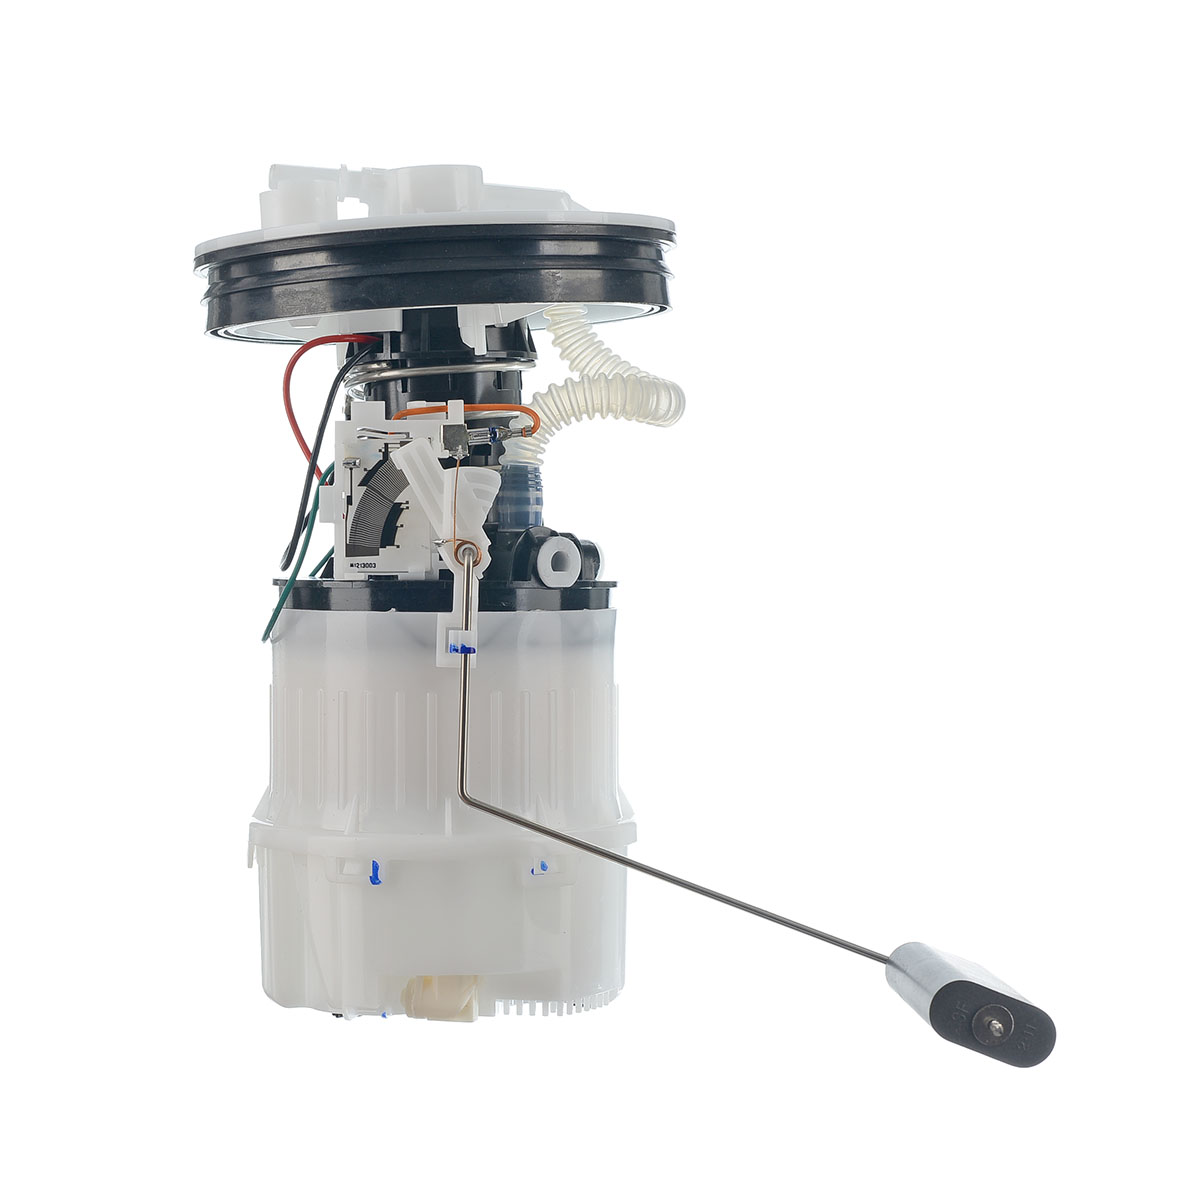 Electric Fuel Pump Embly For Ford Focus I4 2 0l I5 5l 2005 2006 2007 2008 2009 2010 2017 Aodb Aode In Pumps From Automobiles Motorcycles On